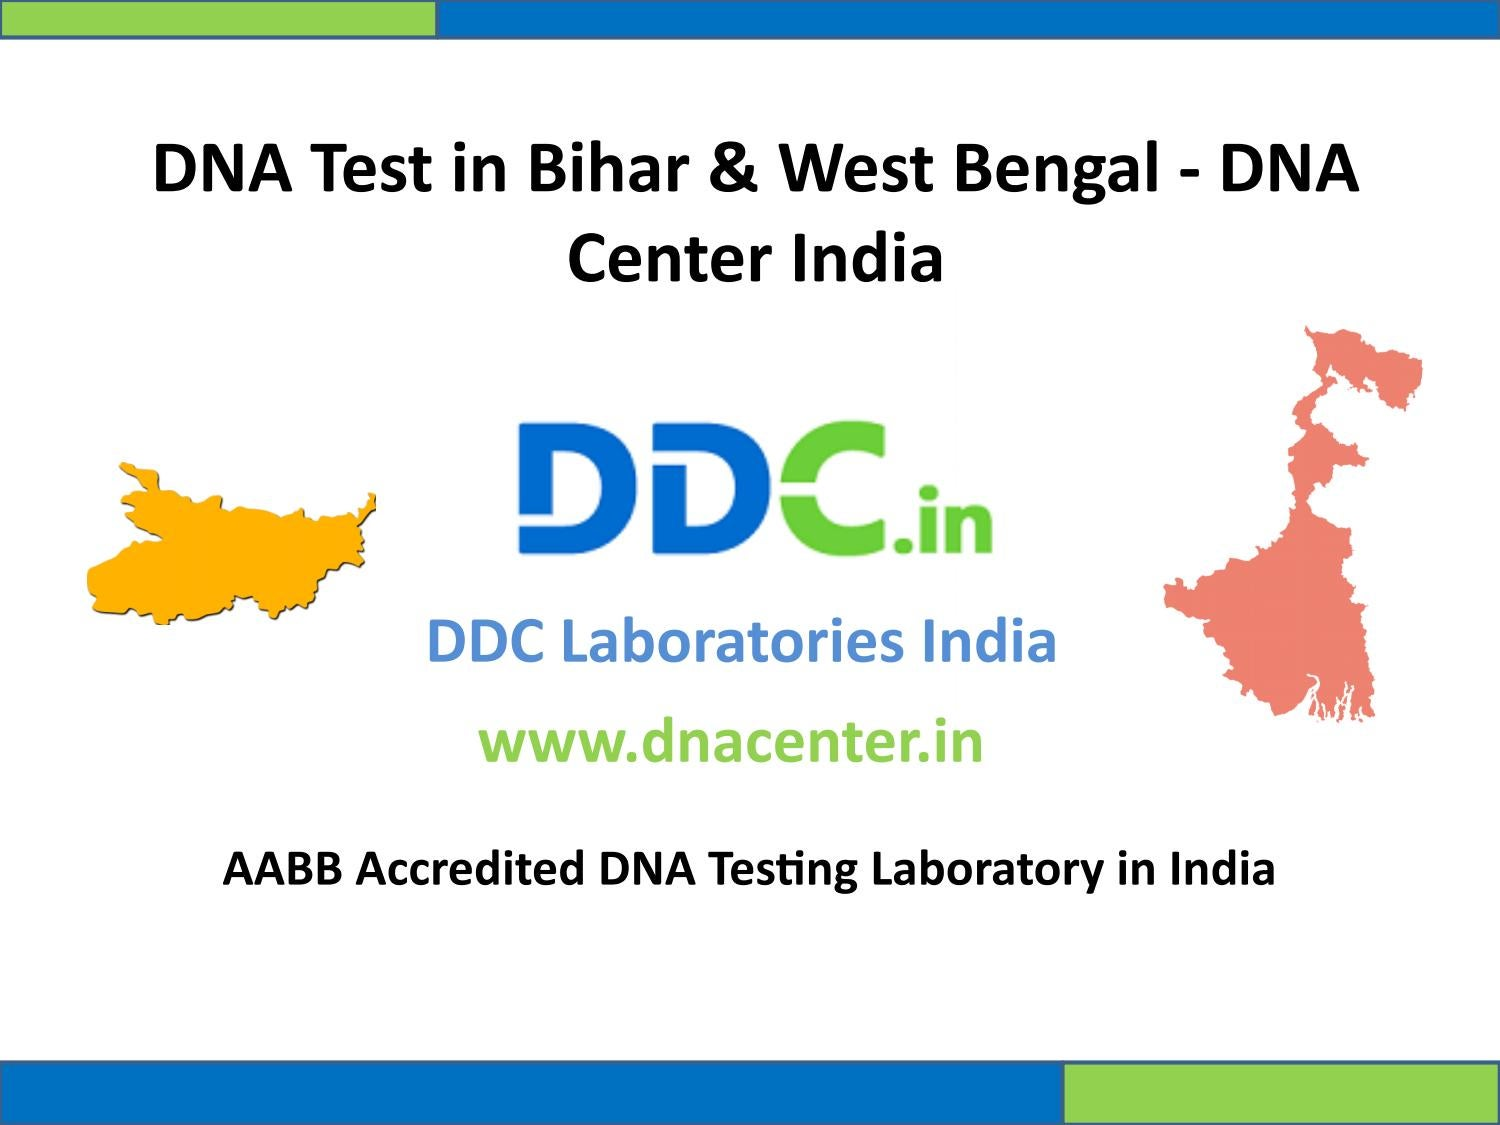 DNA Testing services in Bihar & West Bengal by DNA Center